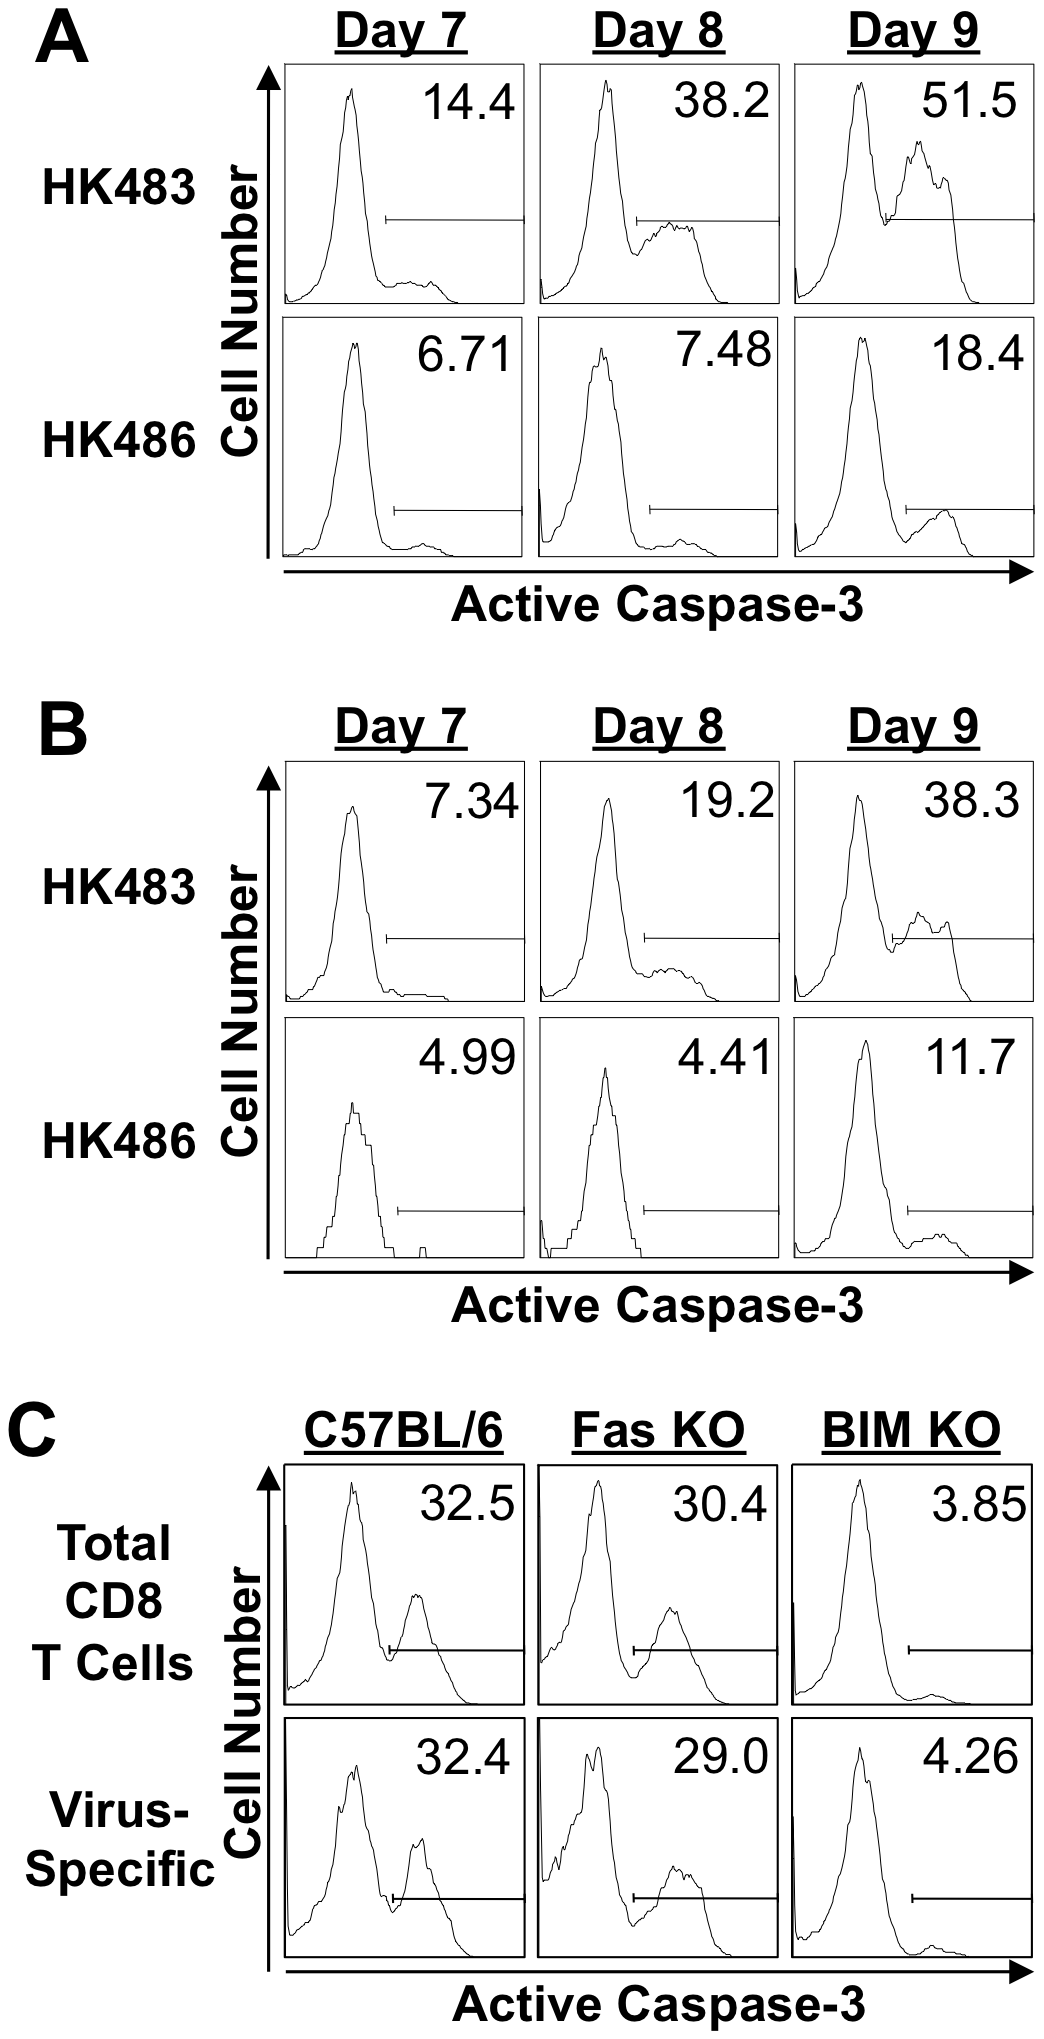 Apoptosis of CD8 T cells in mice infected with H5N1 viruses.